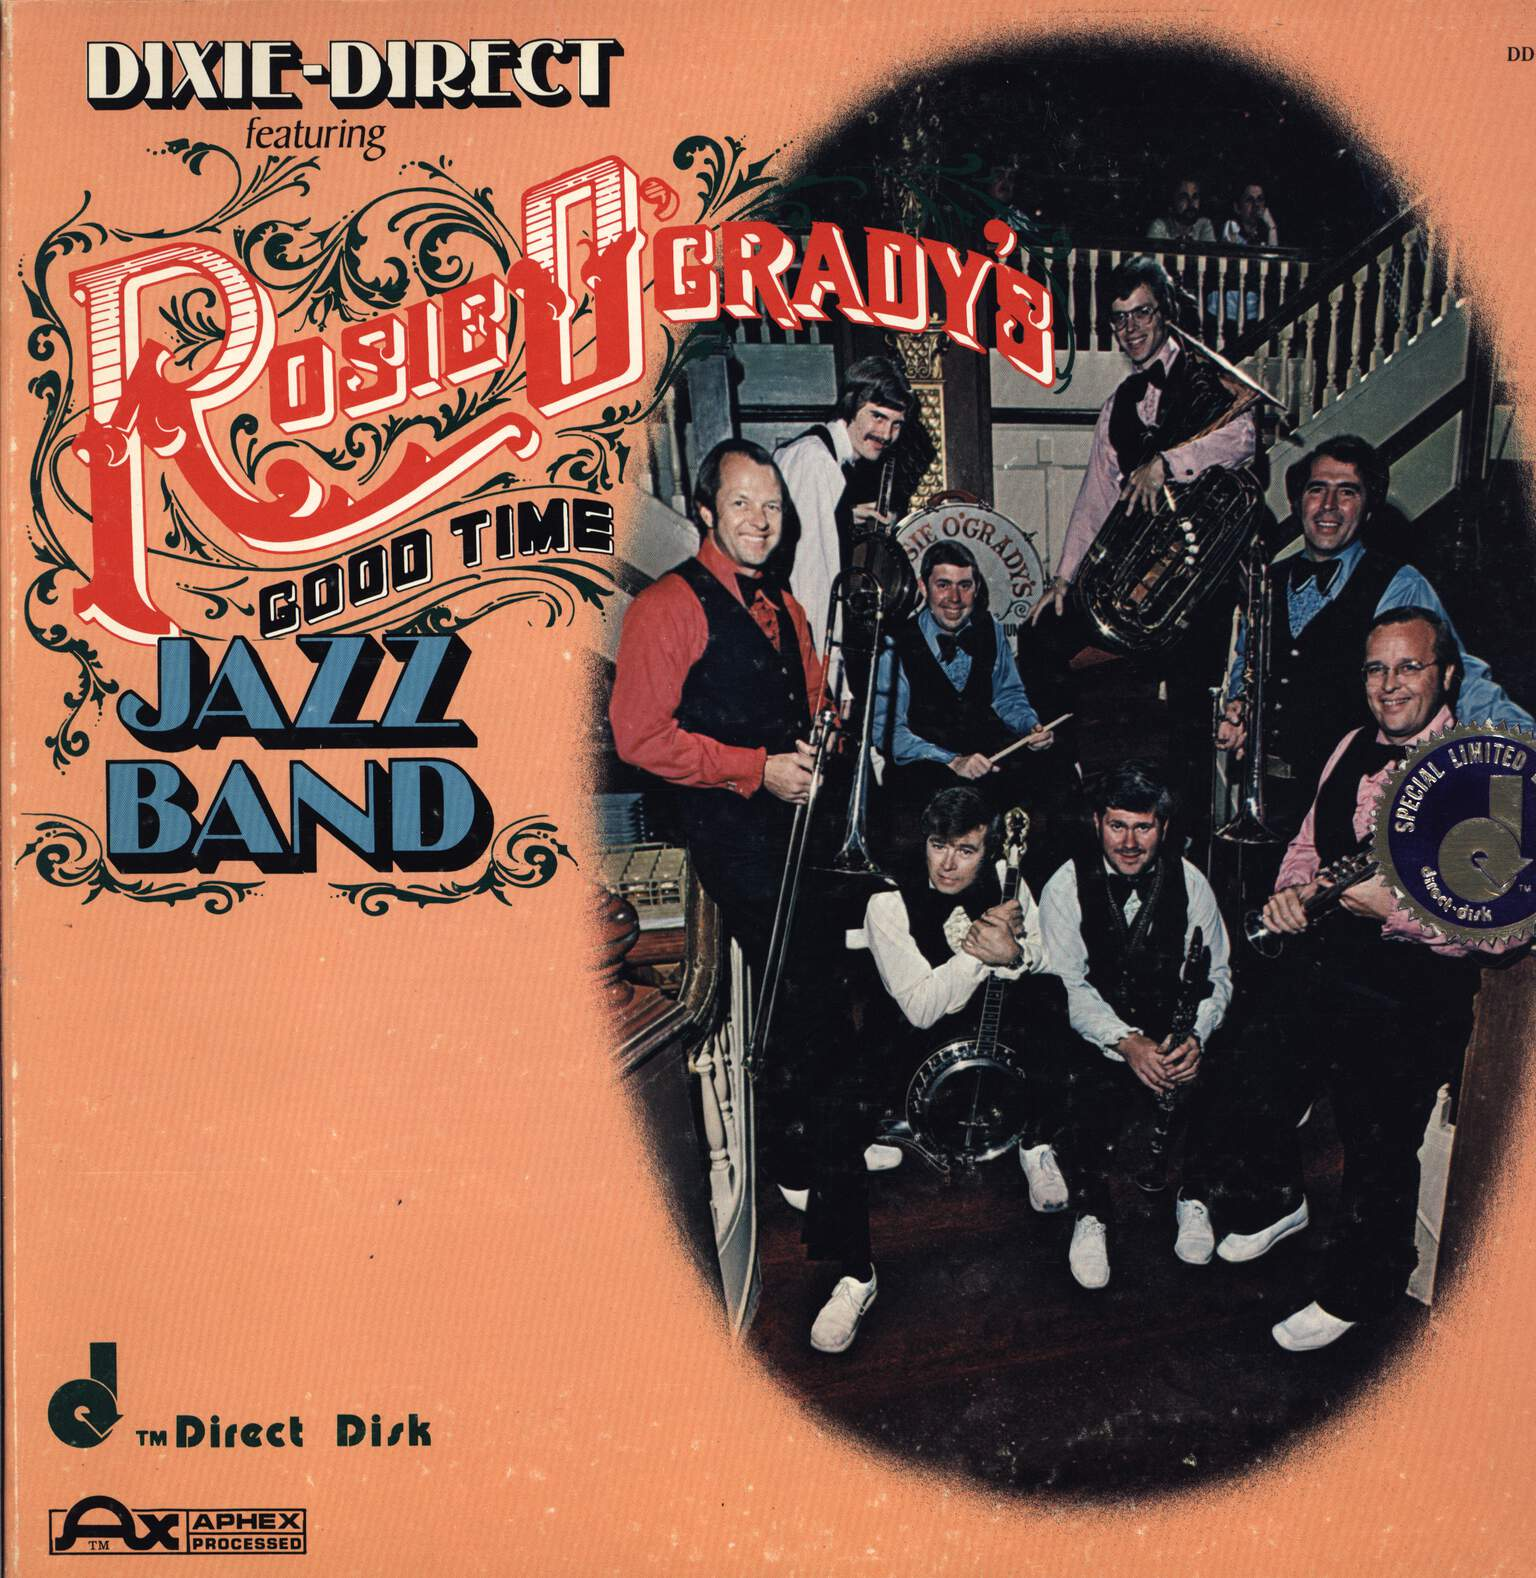 Rosie O'Grady's Good Time Jazz Band: Dixie-Direct Featuring Rosie O'Grady's Good Time Jazz Band, LP (Vinyl)